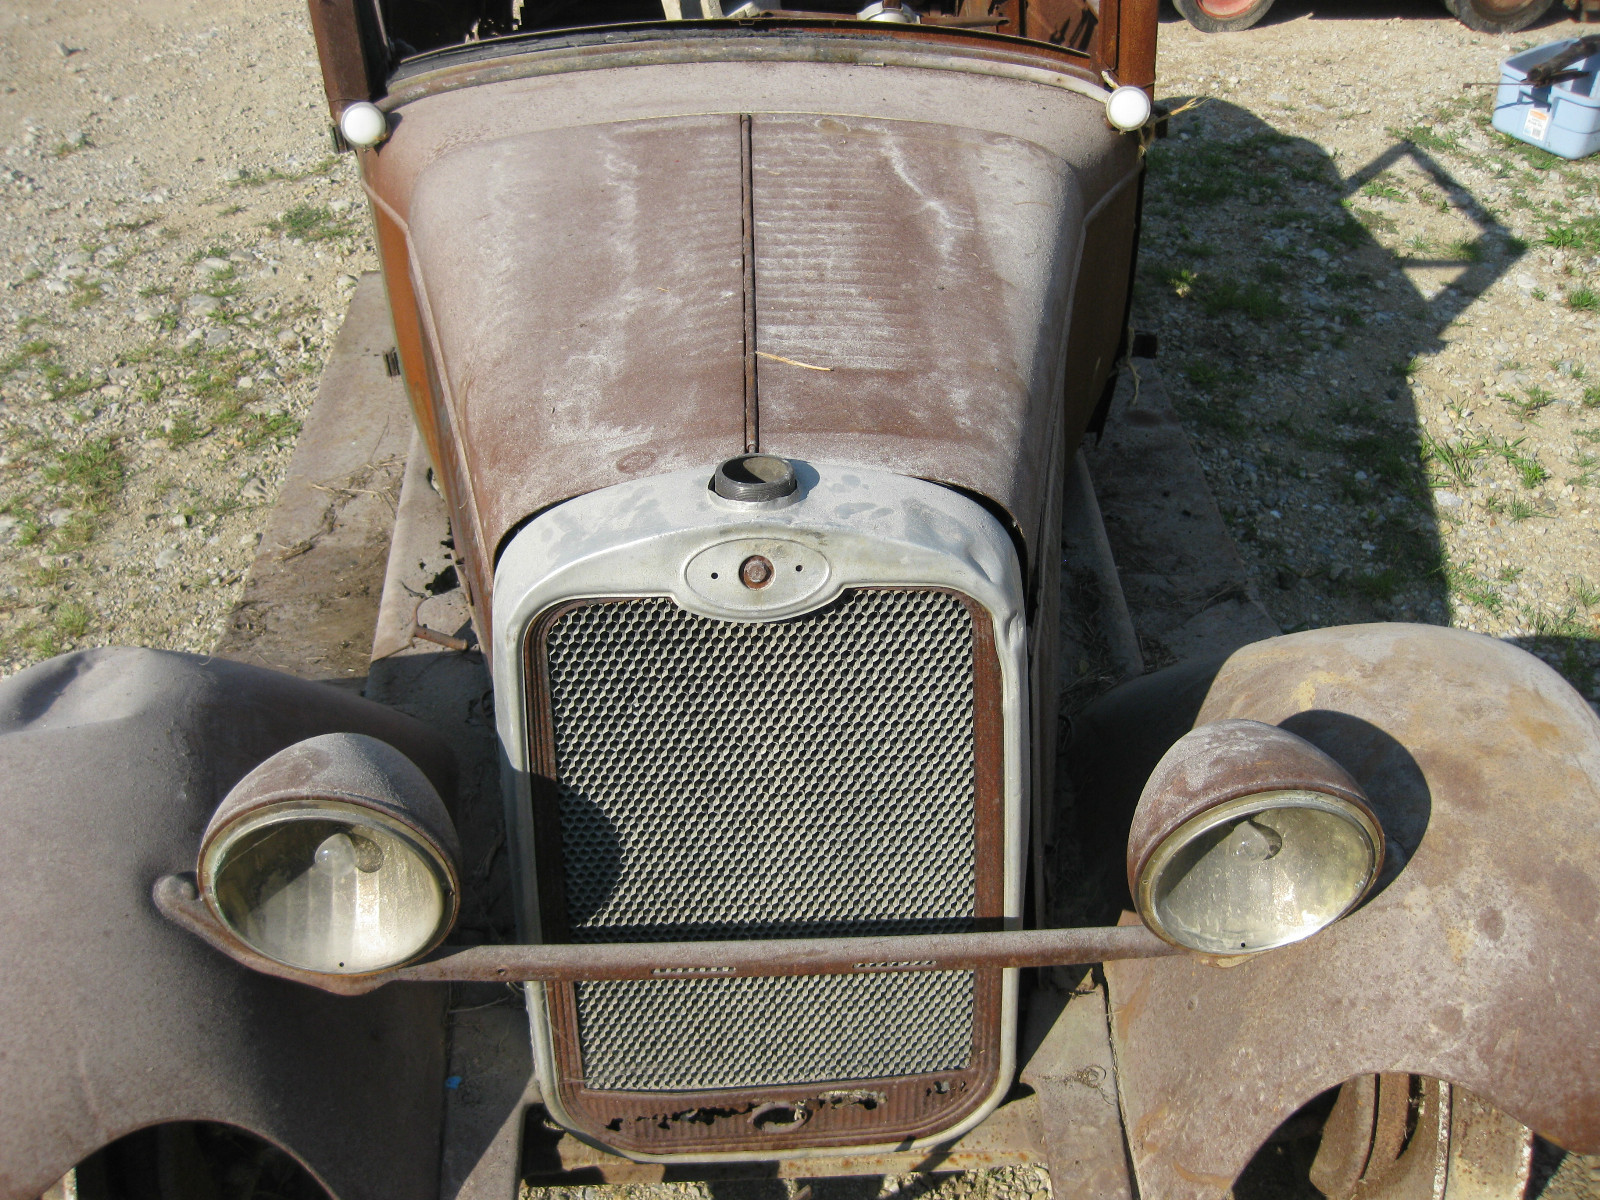 My 1928 Chevrolet: 28 Chev.To Wreck or Restore?